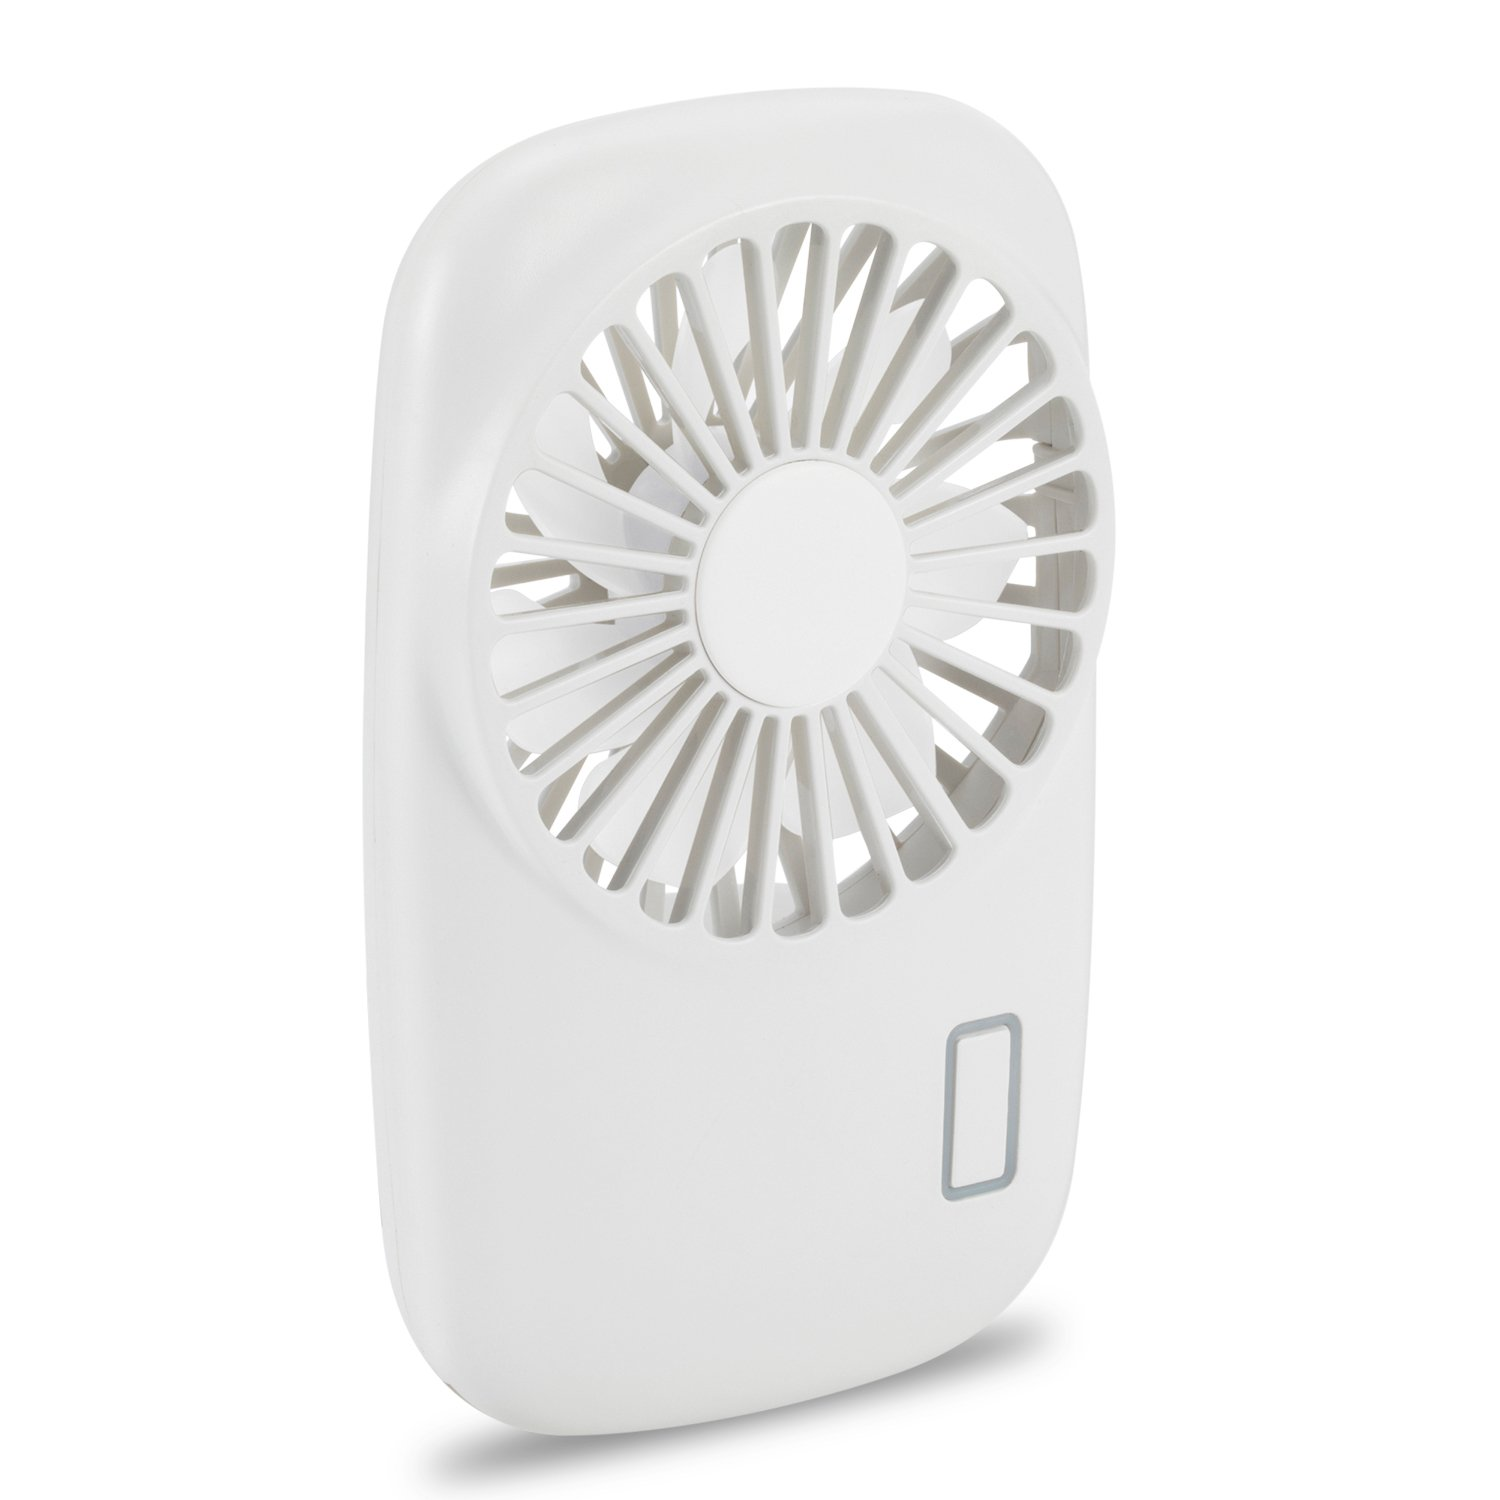 Aluan Handheld Fan Mini Fan Powerful Small Personal Portable Fan Speed Adjustable USB Rechargeable Cooling for Kids Girls Woman Home Office Travel, White